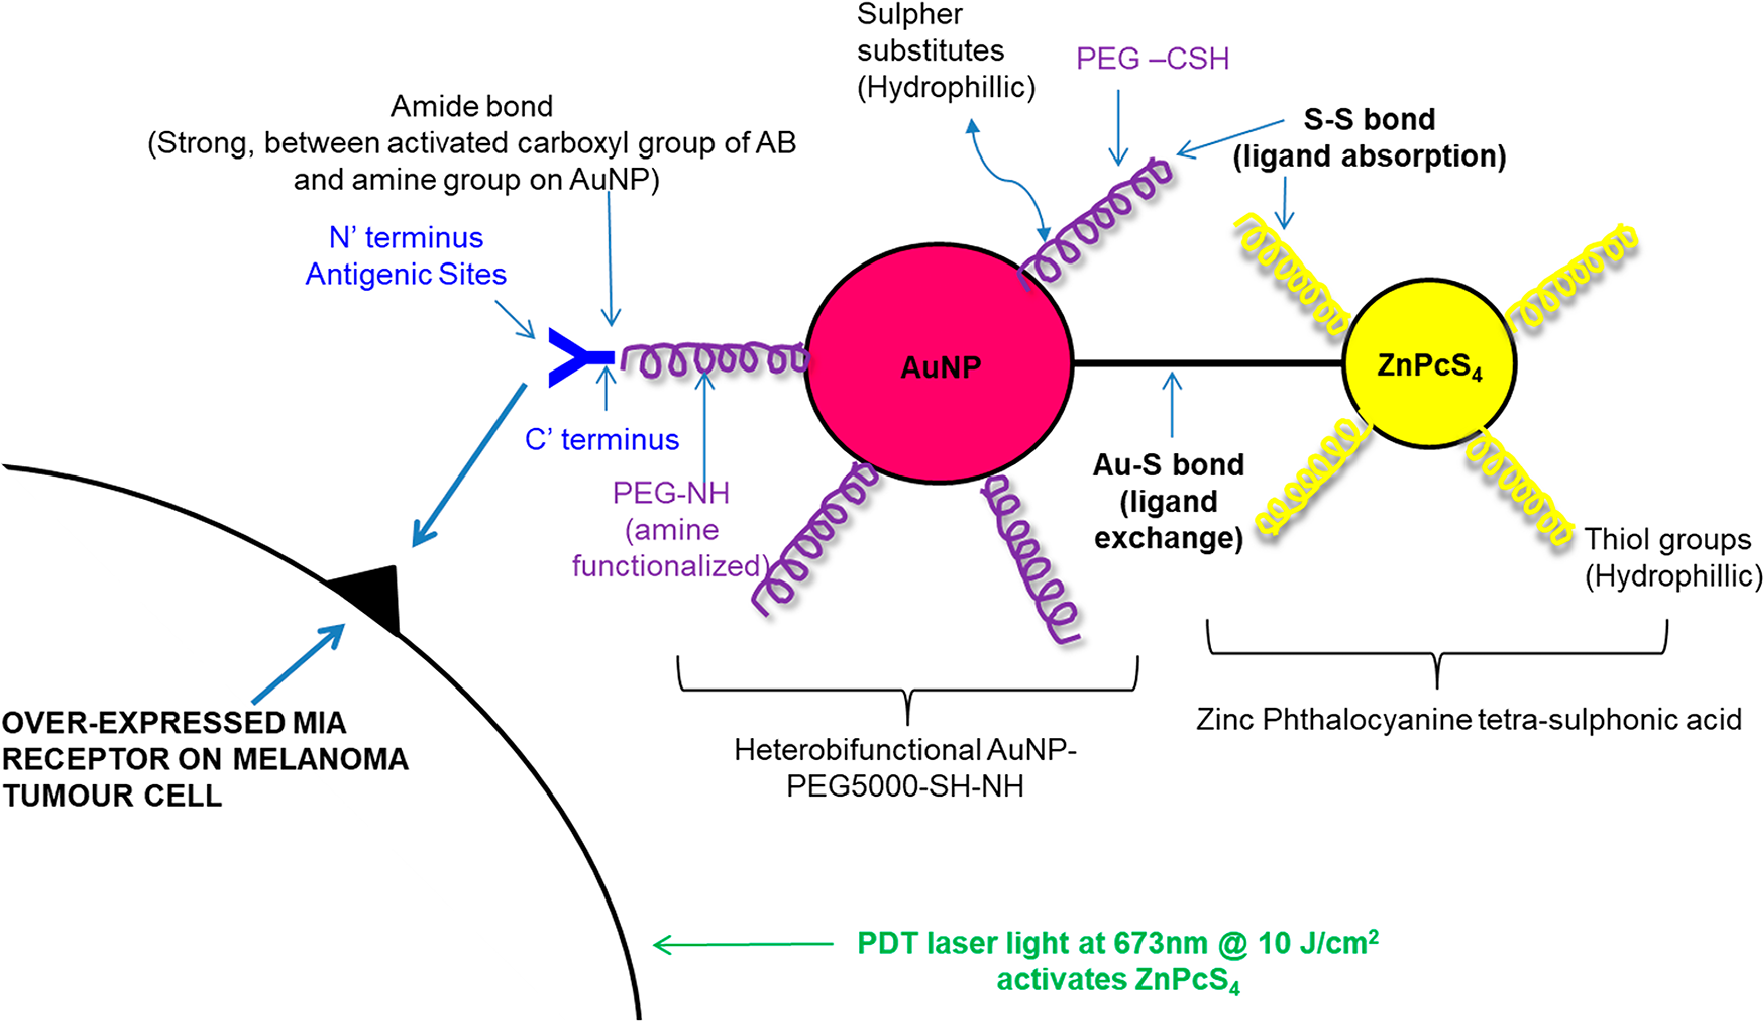 Theorized active targeted final PS molecular drug conjugate ZnPcS4 – AuNP-PEG5000-SH-NH2 – Anti-MIA Ab structure and bond formation.